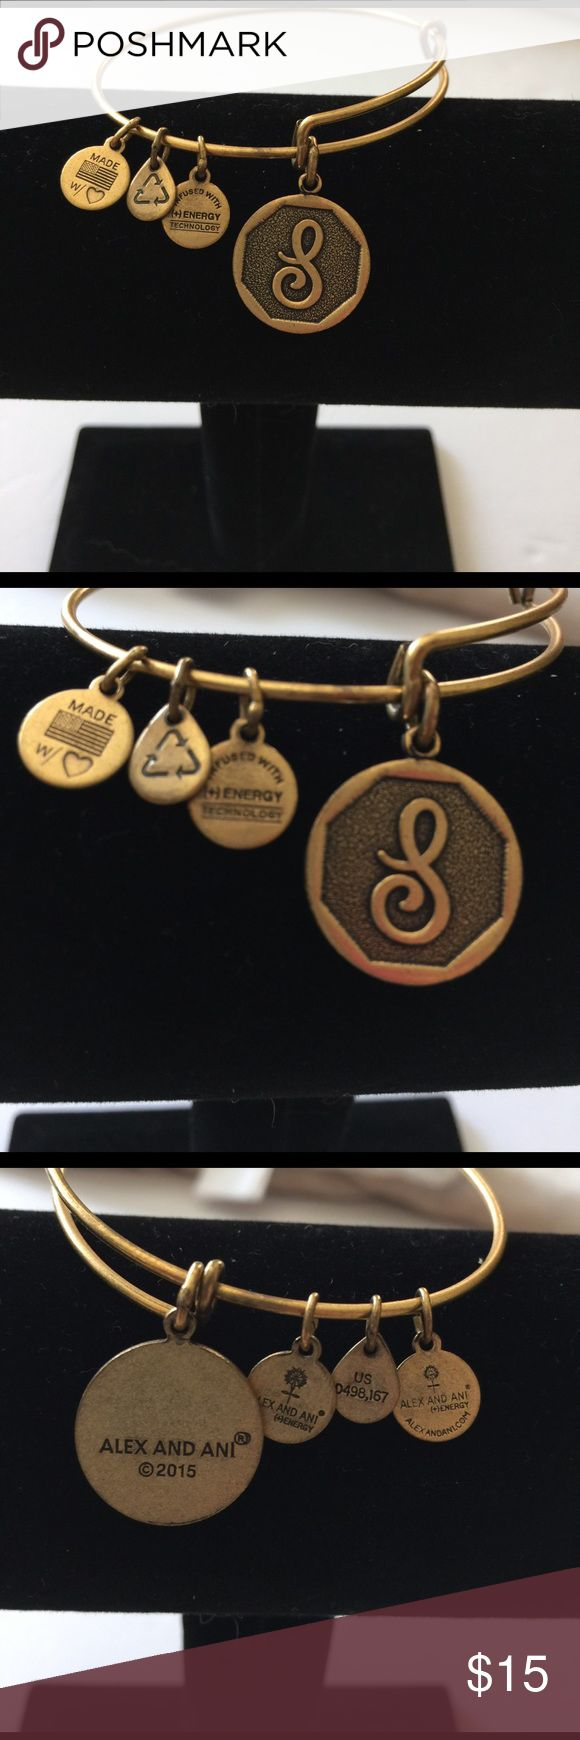 "Alex and Ani - Initial S Charm Bangle Pre owned Alex and Ani Initial S Charm Bangle. Does not come with dust bag or box.                                     The perfect addition to your charmed arm • Expandable from: 2.5"" to 3"" • Charm Dimension: 0.75"" x 0.75"" • Crafted in RAFAELIAN GOLD finish Alex & Ani Accessories"